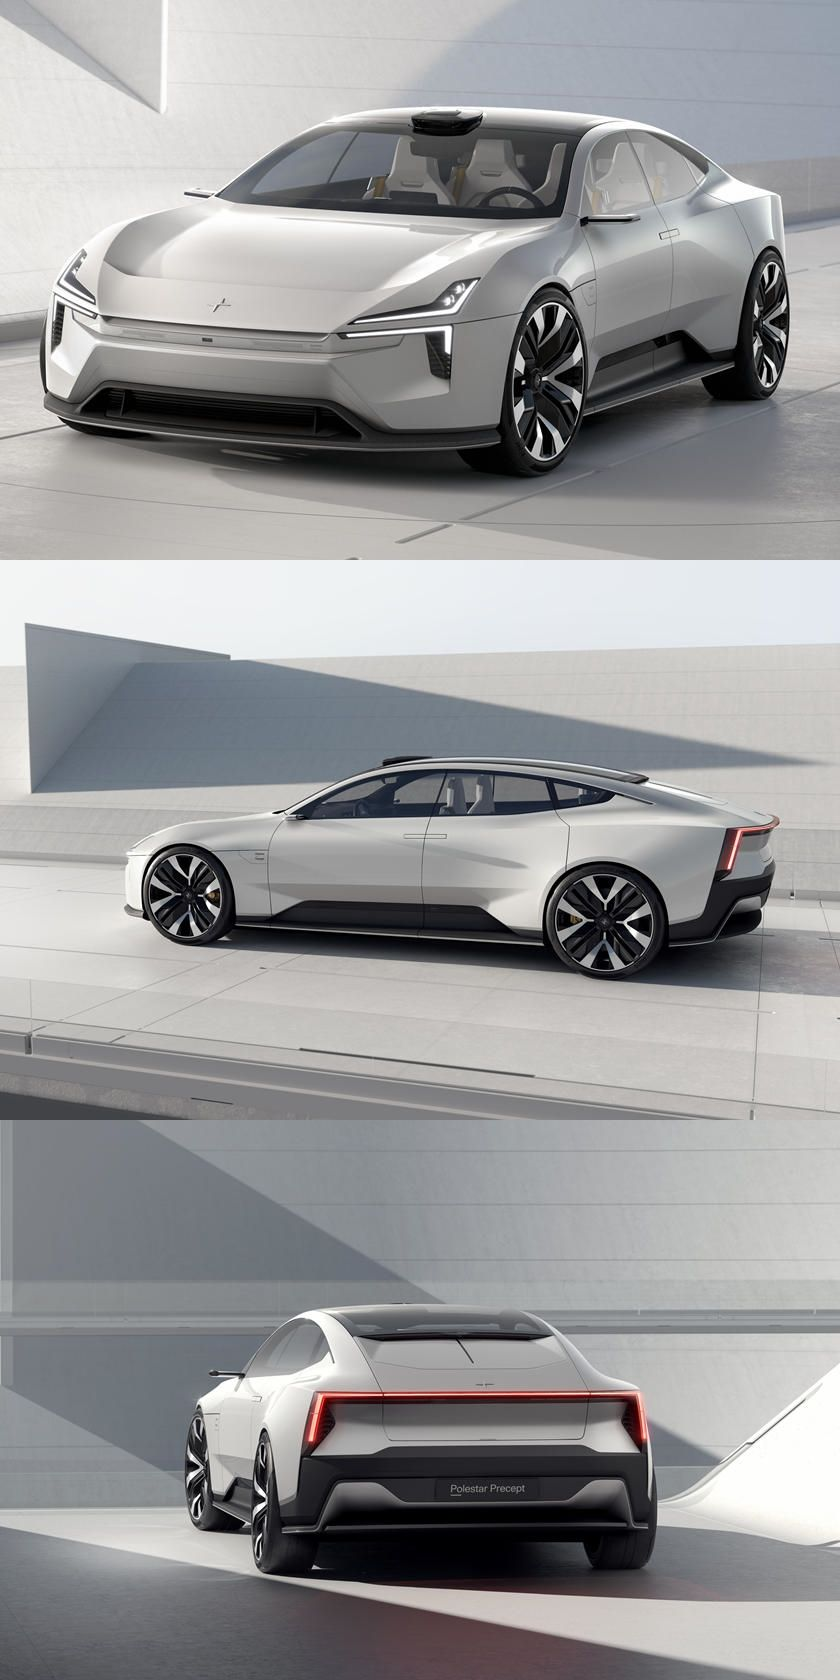 Presenting The Stunning Polestar Precept Concept. Polestar will preview its future design direction and new advanced tech at Geneva next week.